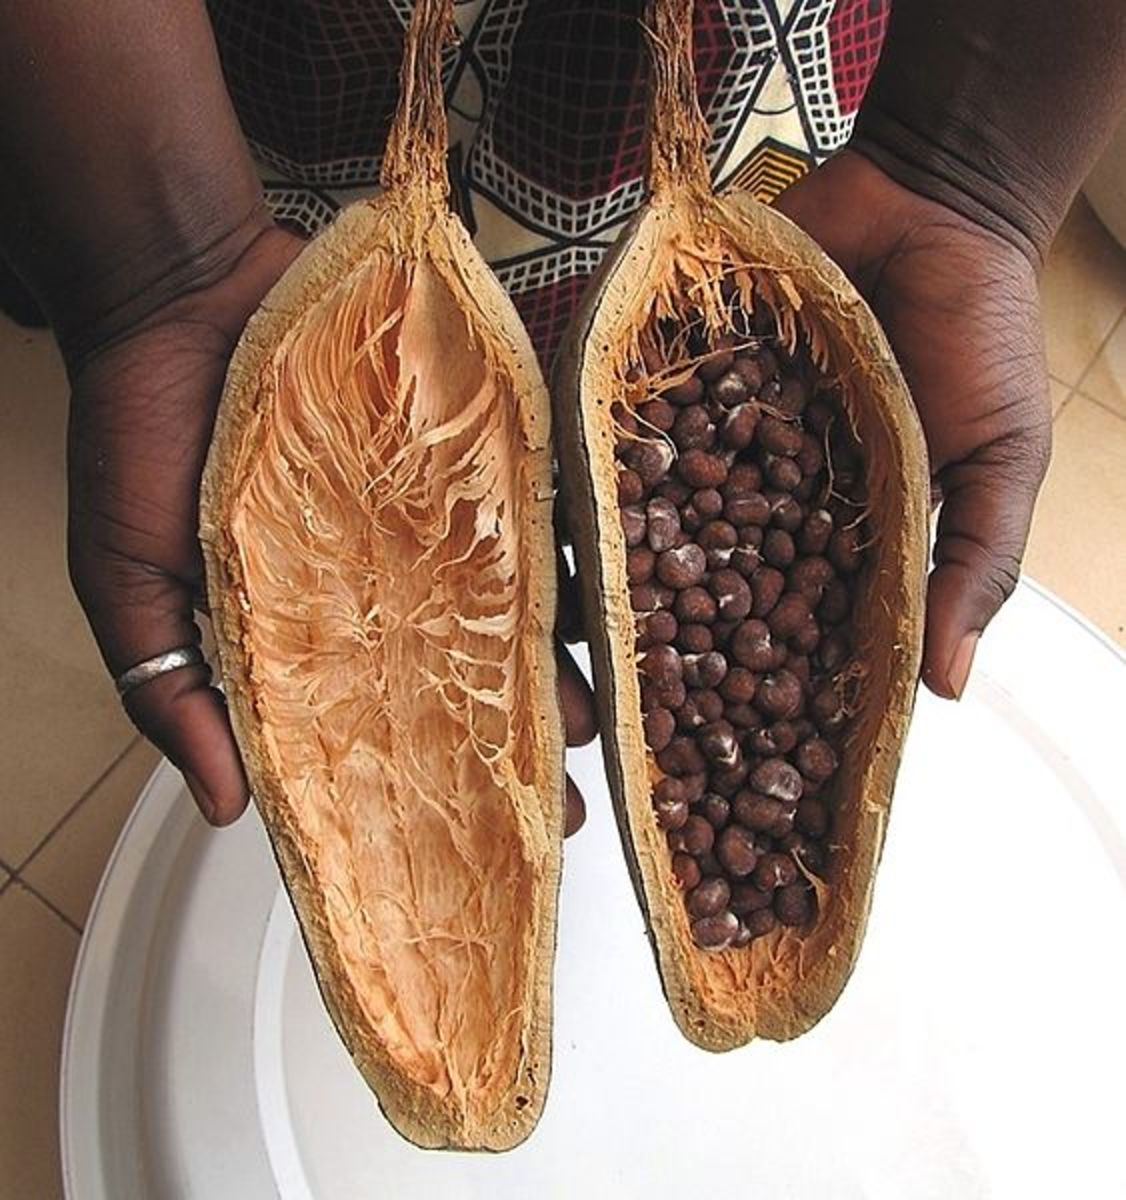 Baobab Fruit with Seeds